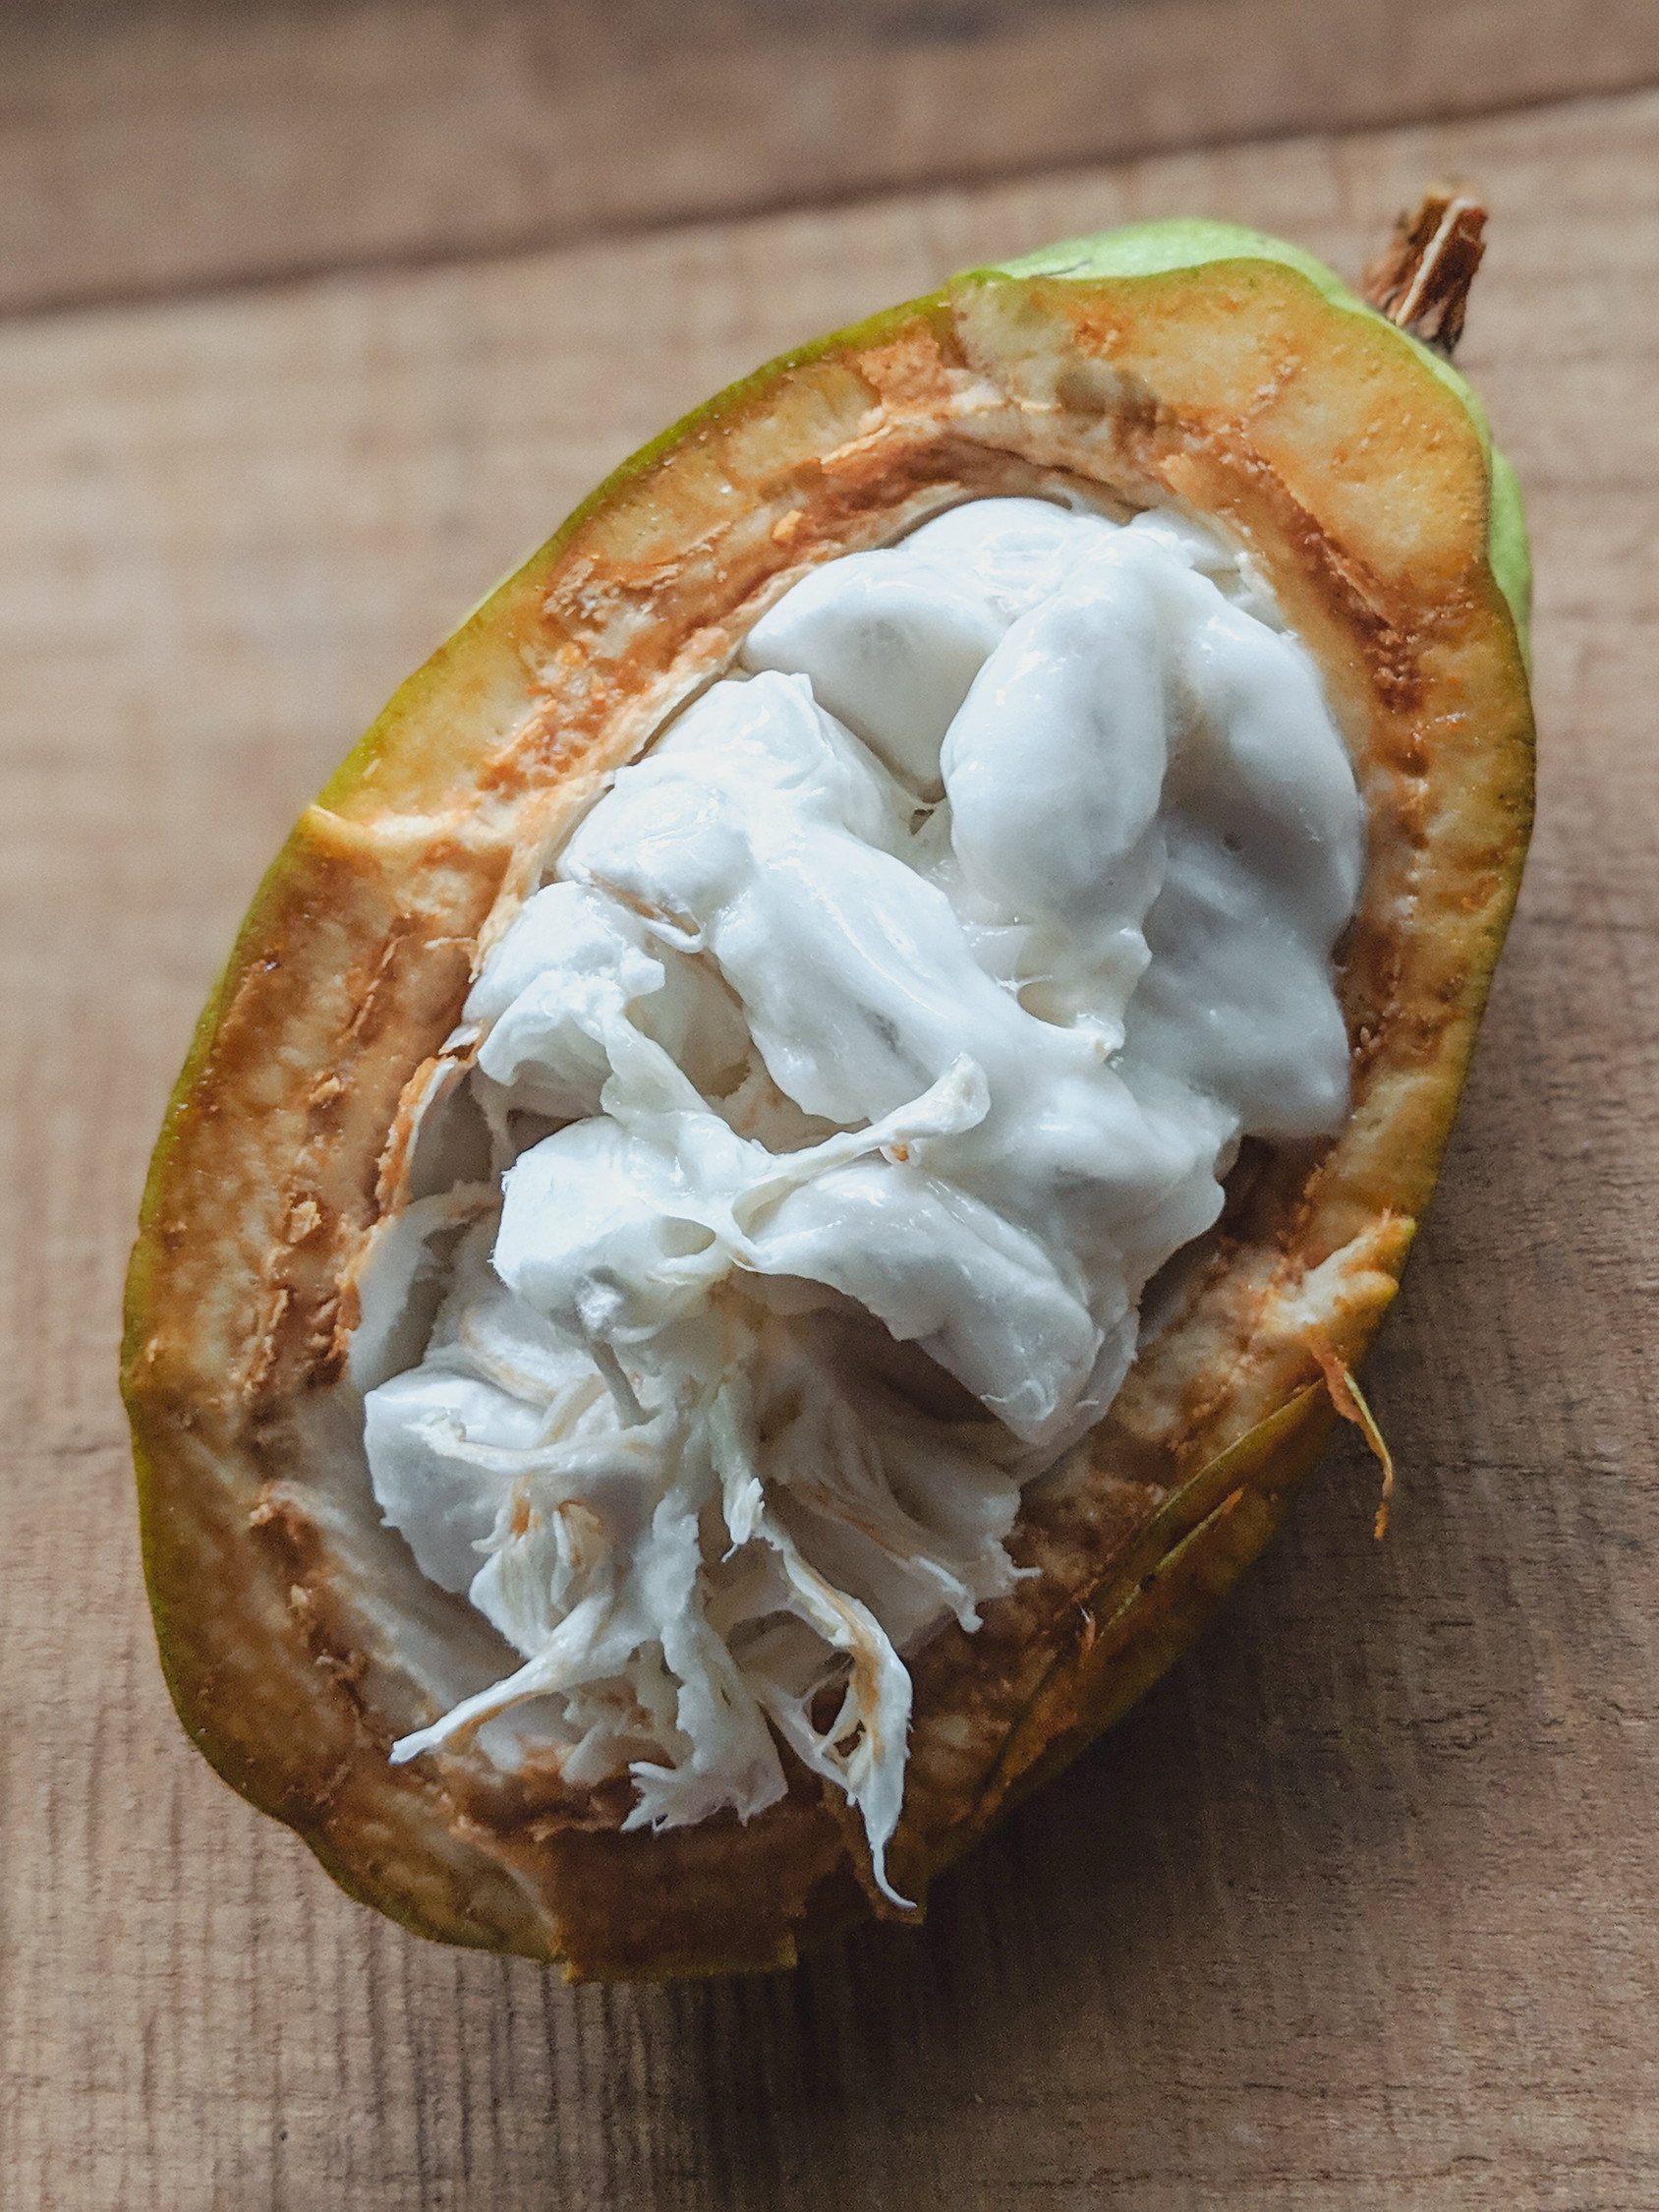 Cacao fruit in Costa Rica is a sweet edible plant with a fleshy white interior.